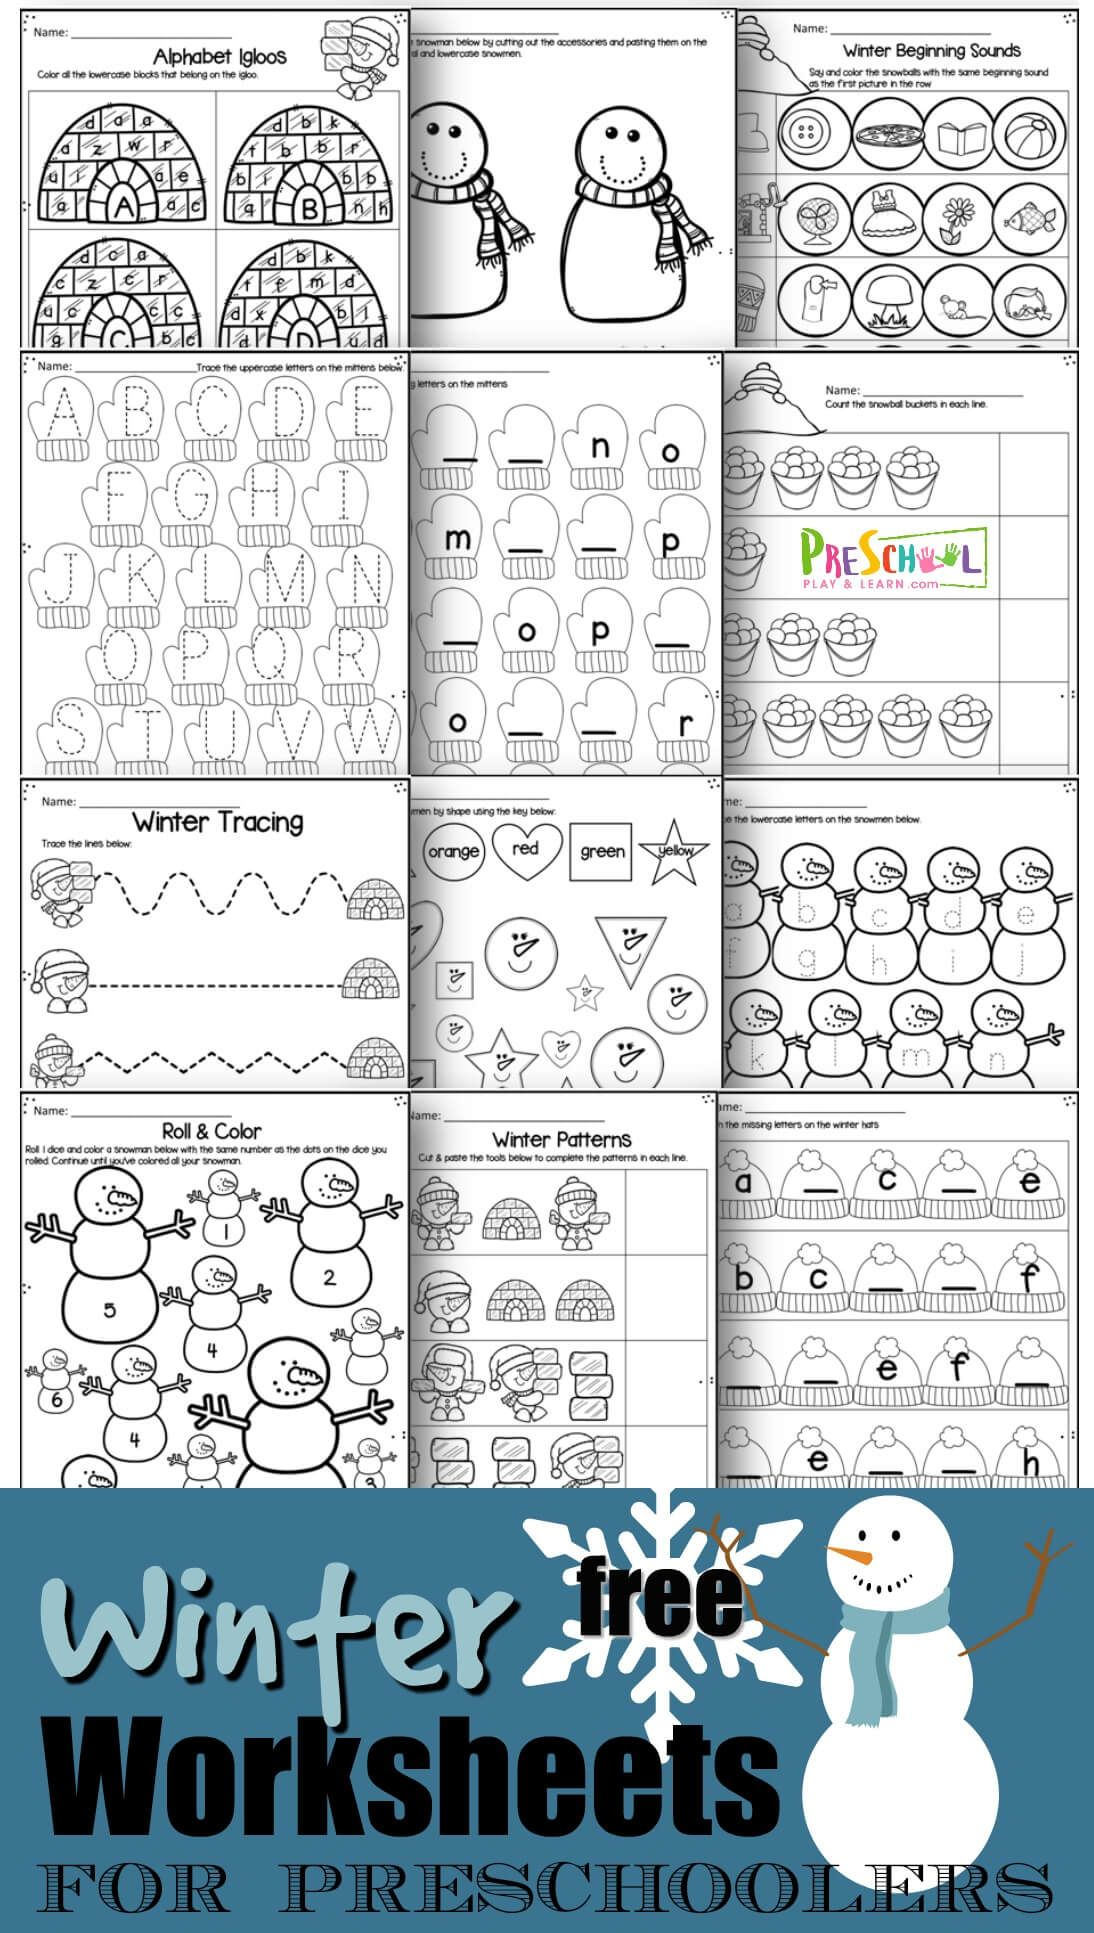 Winter Worksheets For Preschool In